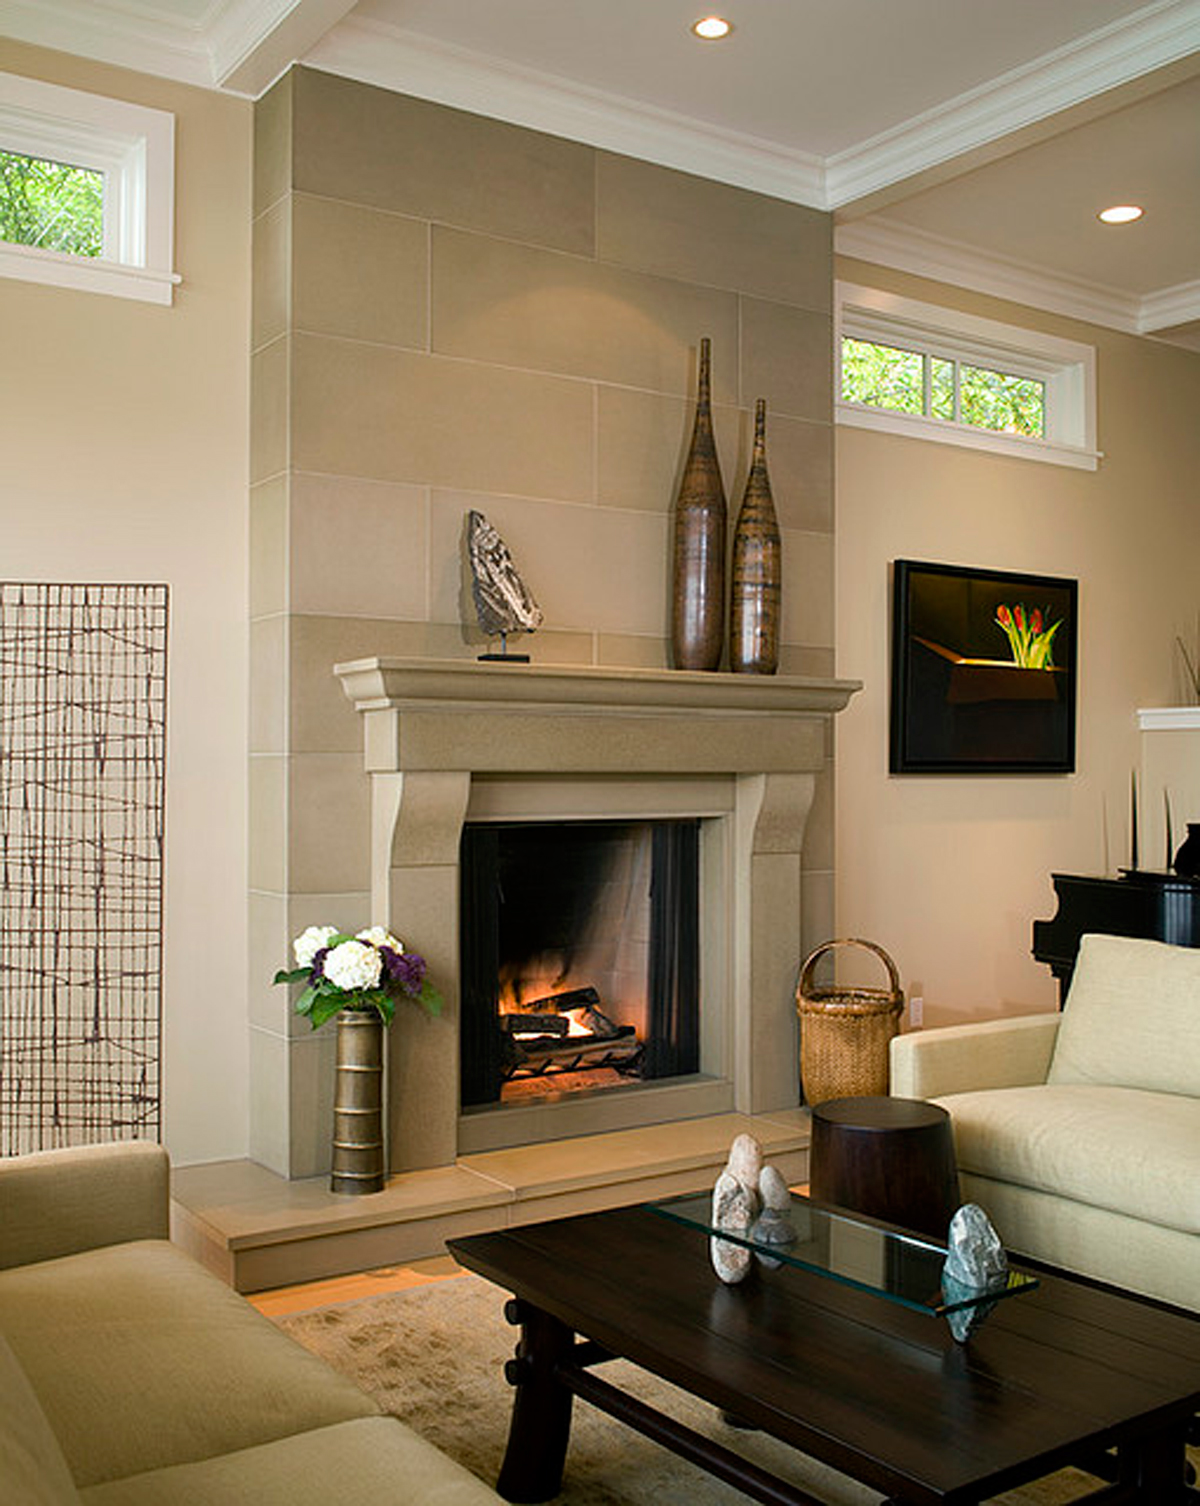 Design Fireplaces Fascinating Fireplace Designs Pictures Iroonie